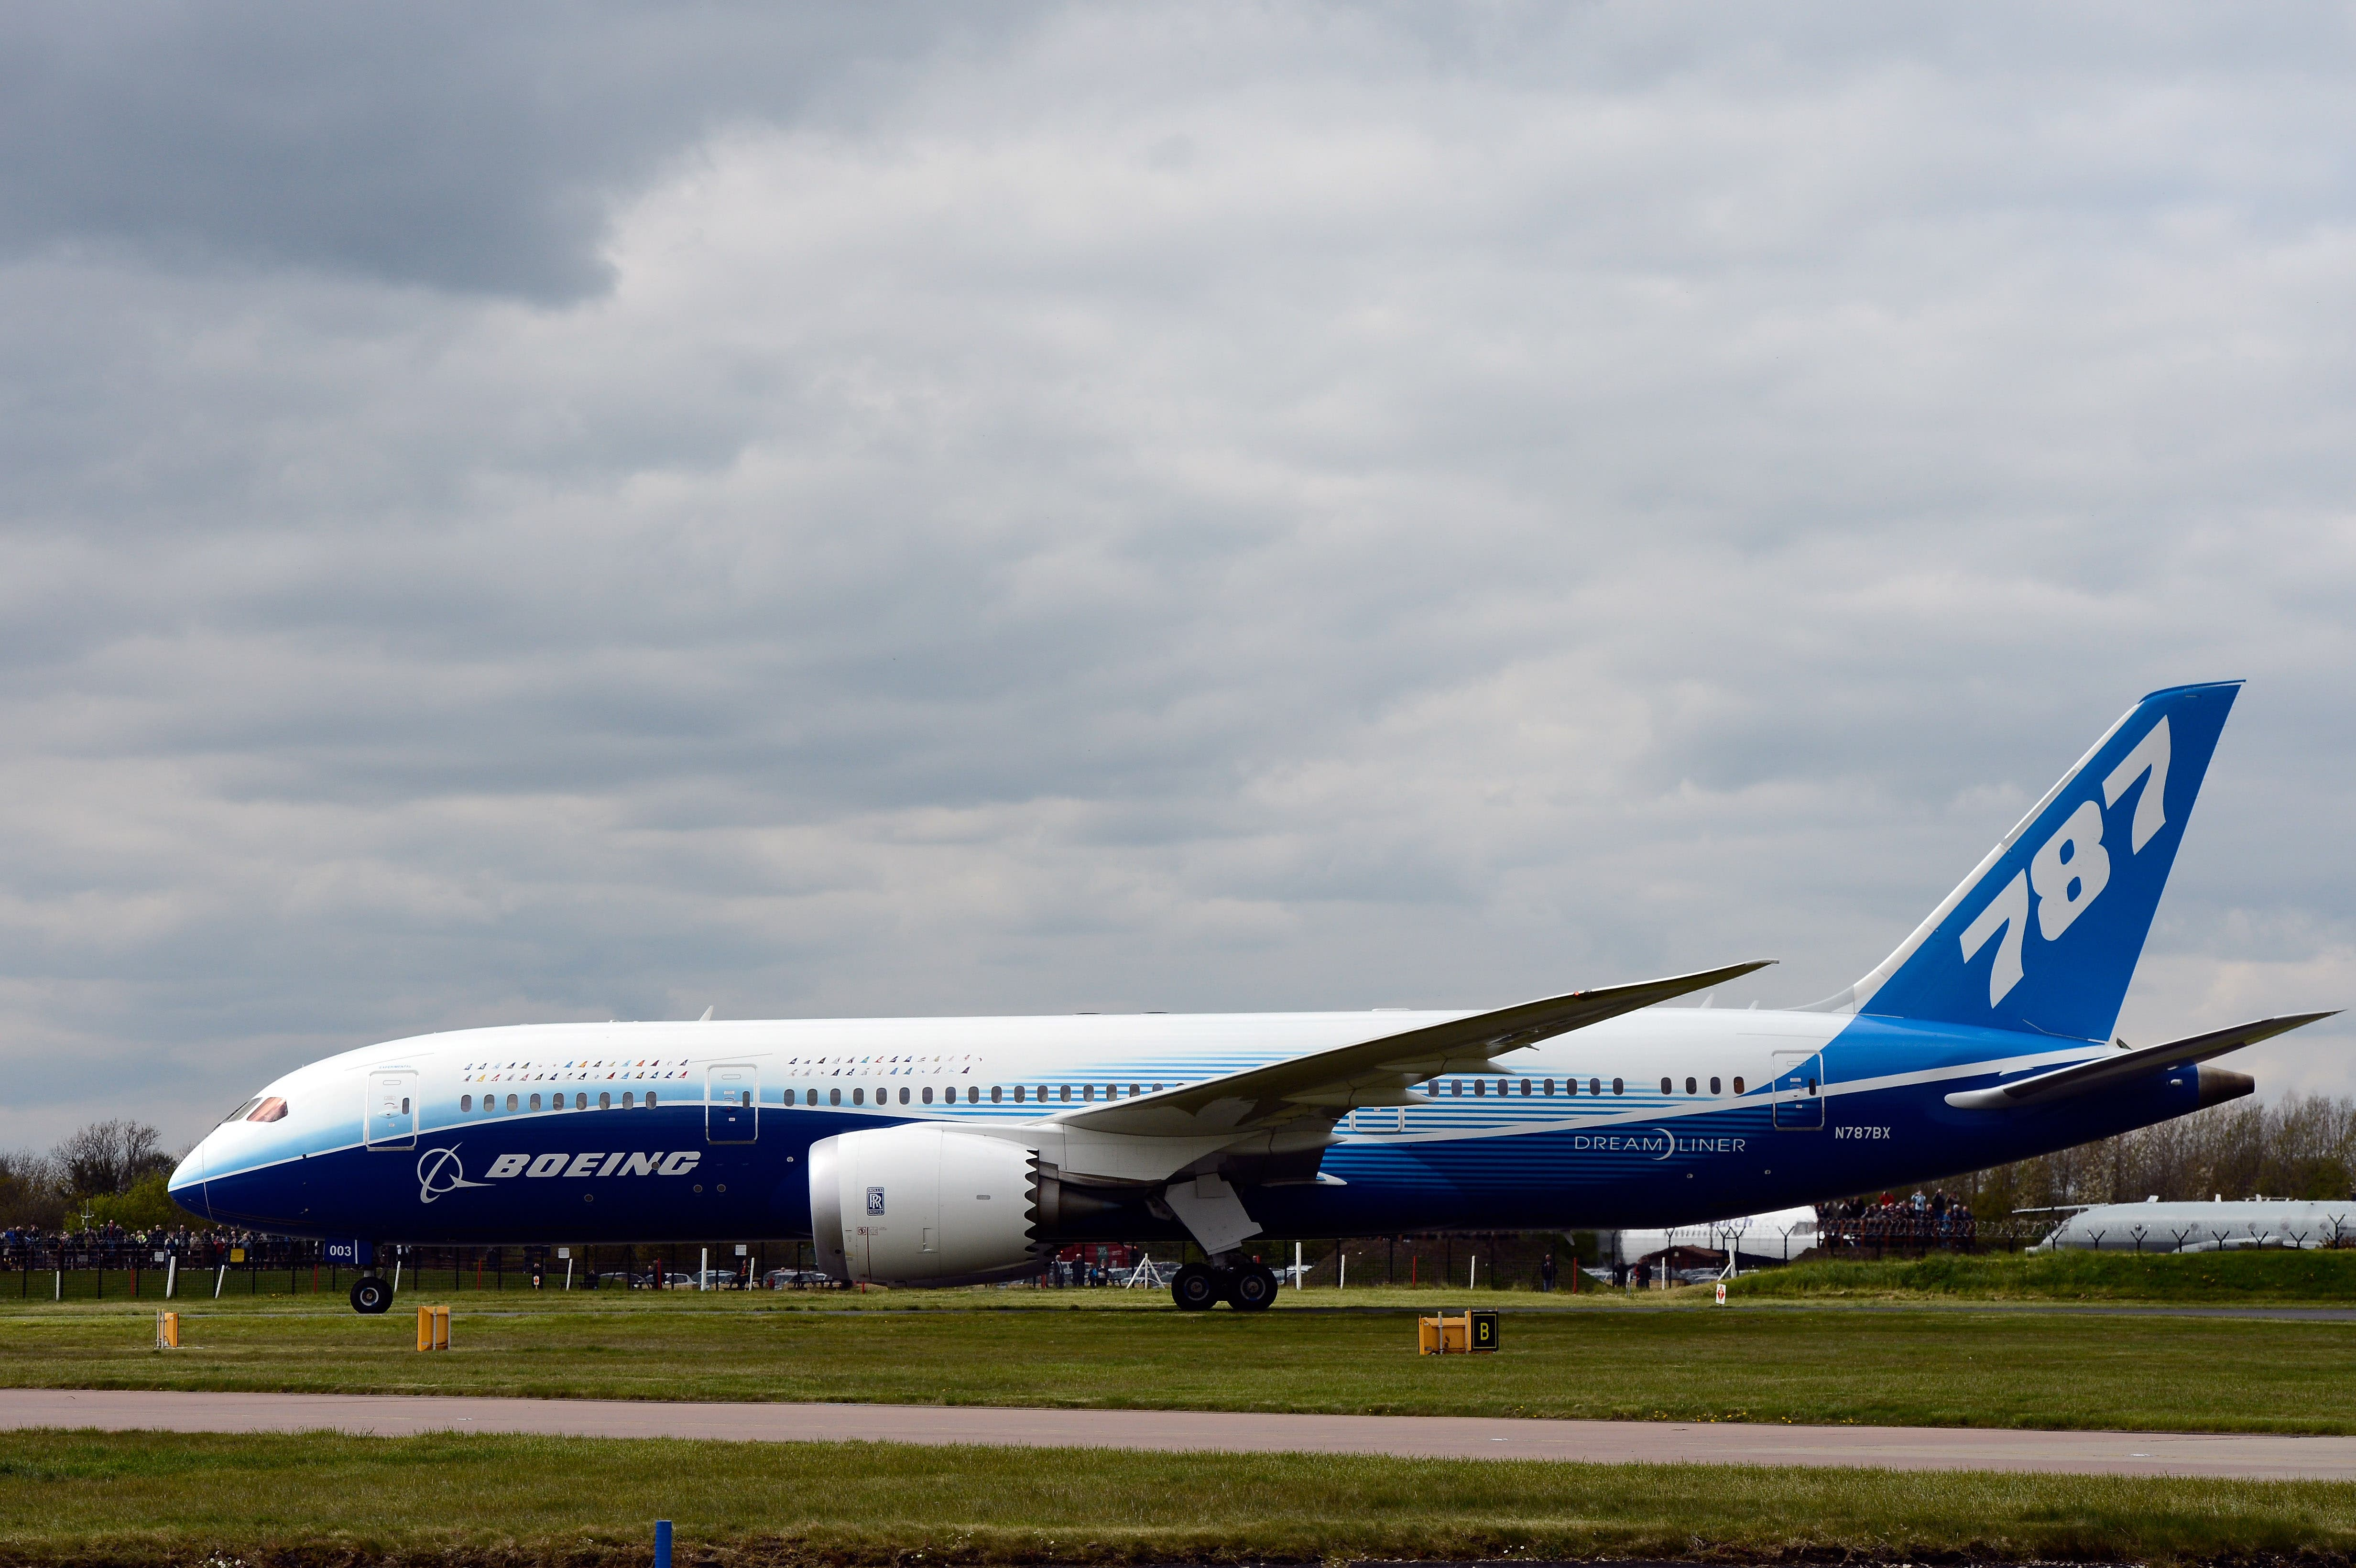 Boeing's 787 Dreamliner has re-entered commercial operations, to the relief of airlines across the MENA region